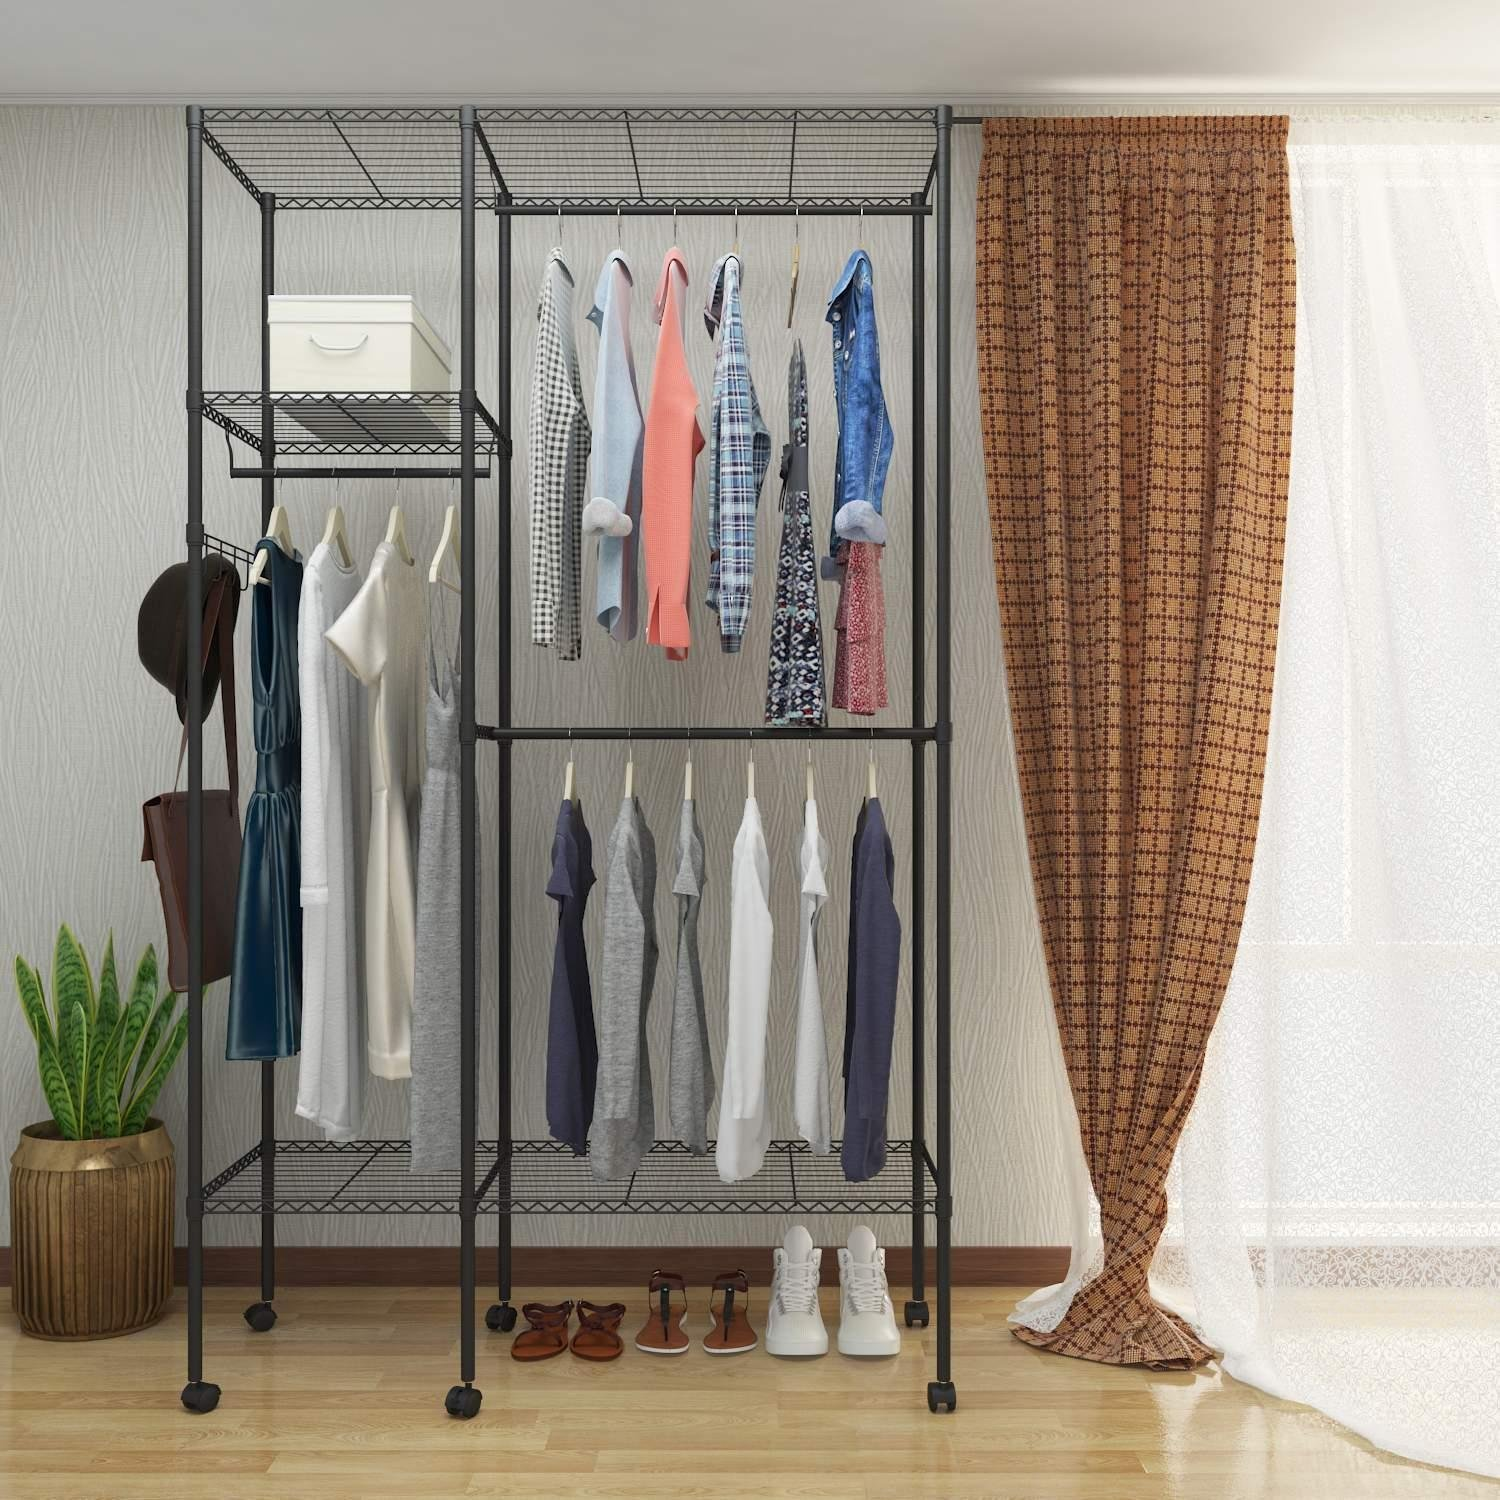 Get Quotations · Utheing Wire Clothes Rack Closet Organizer Shelf Garment  Rack, Rolling Hanging Metal Heavy Duty Clothes